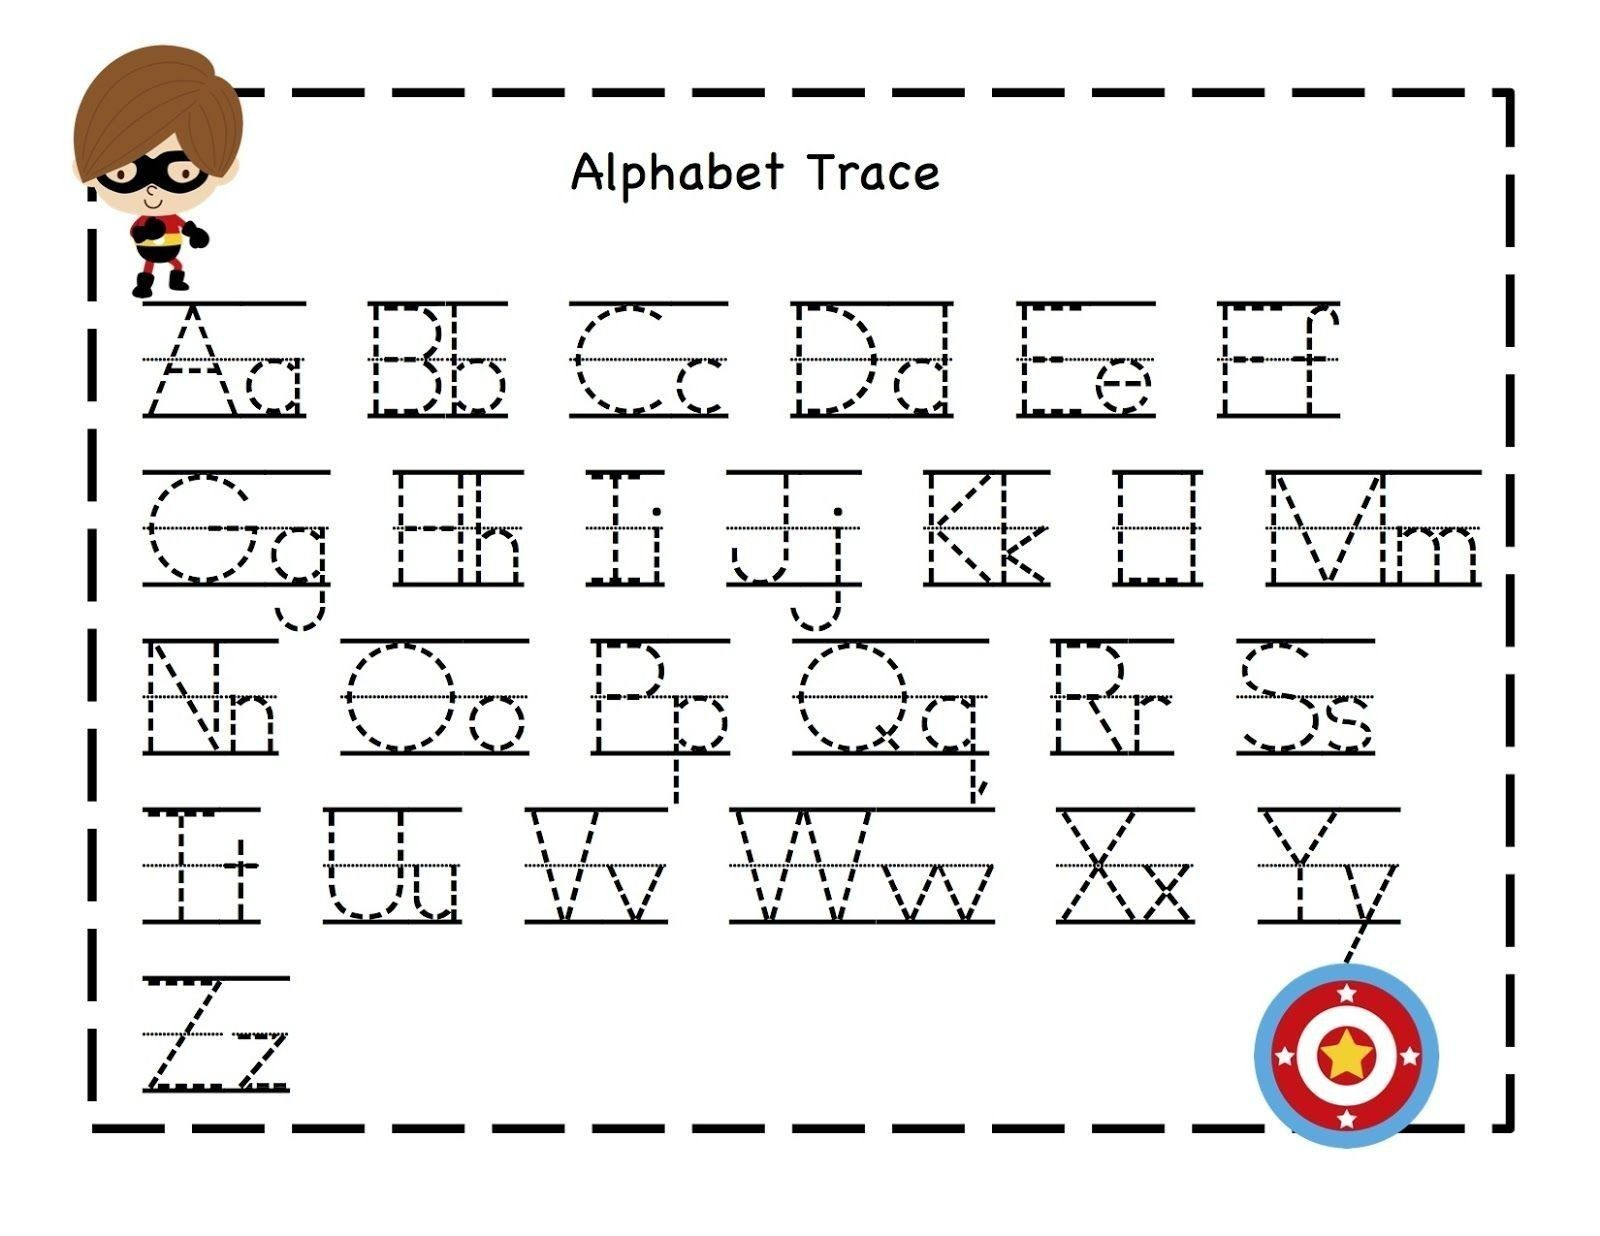 3 Year Old Worksheets Tracing Letters | Printable Worksheets pertaining to Letter A Worksheets For 3 Year Olds